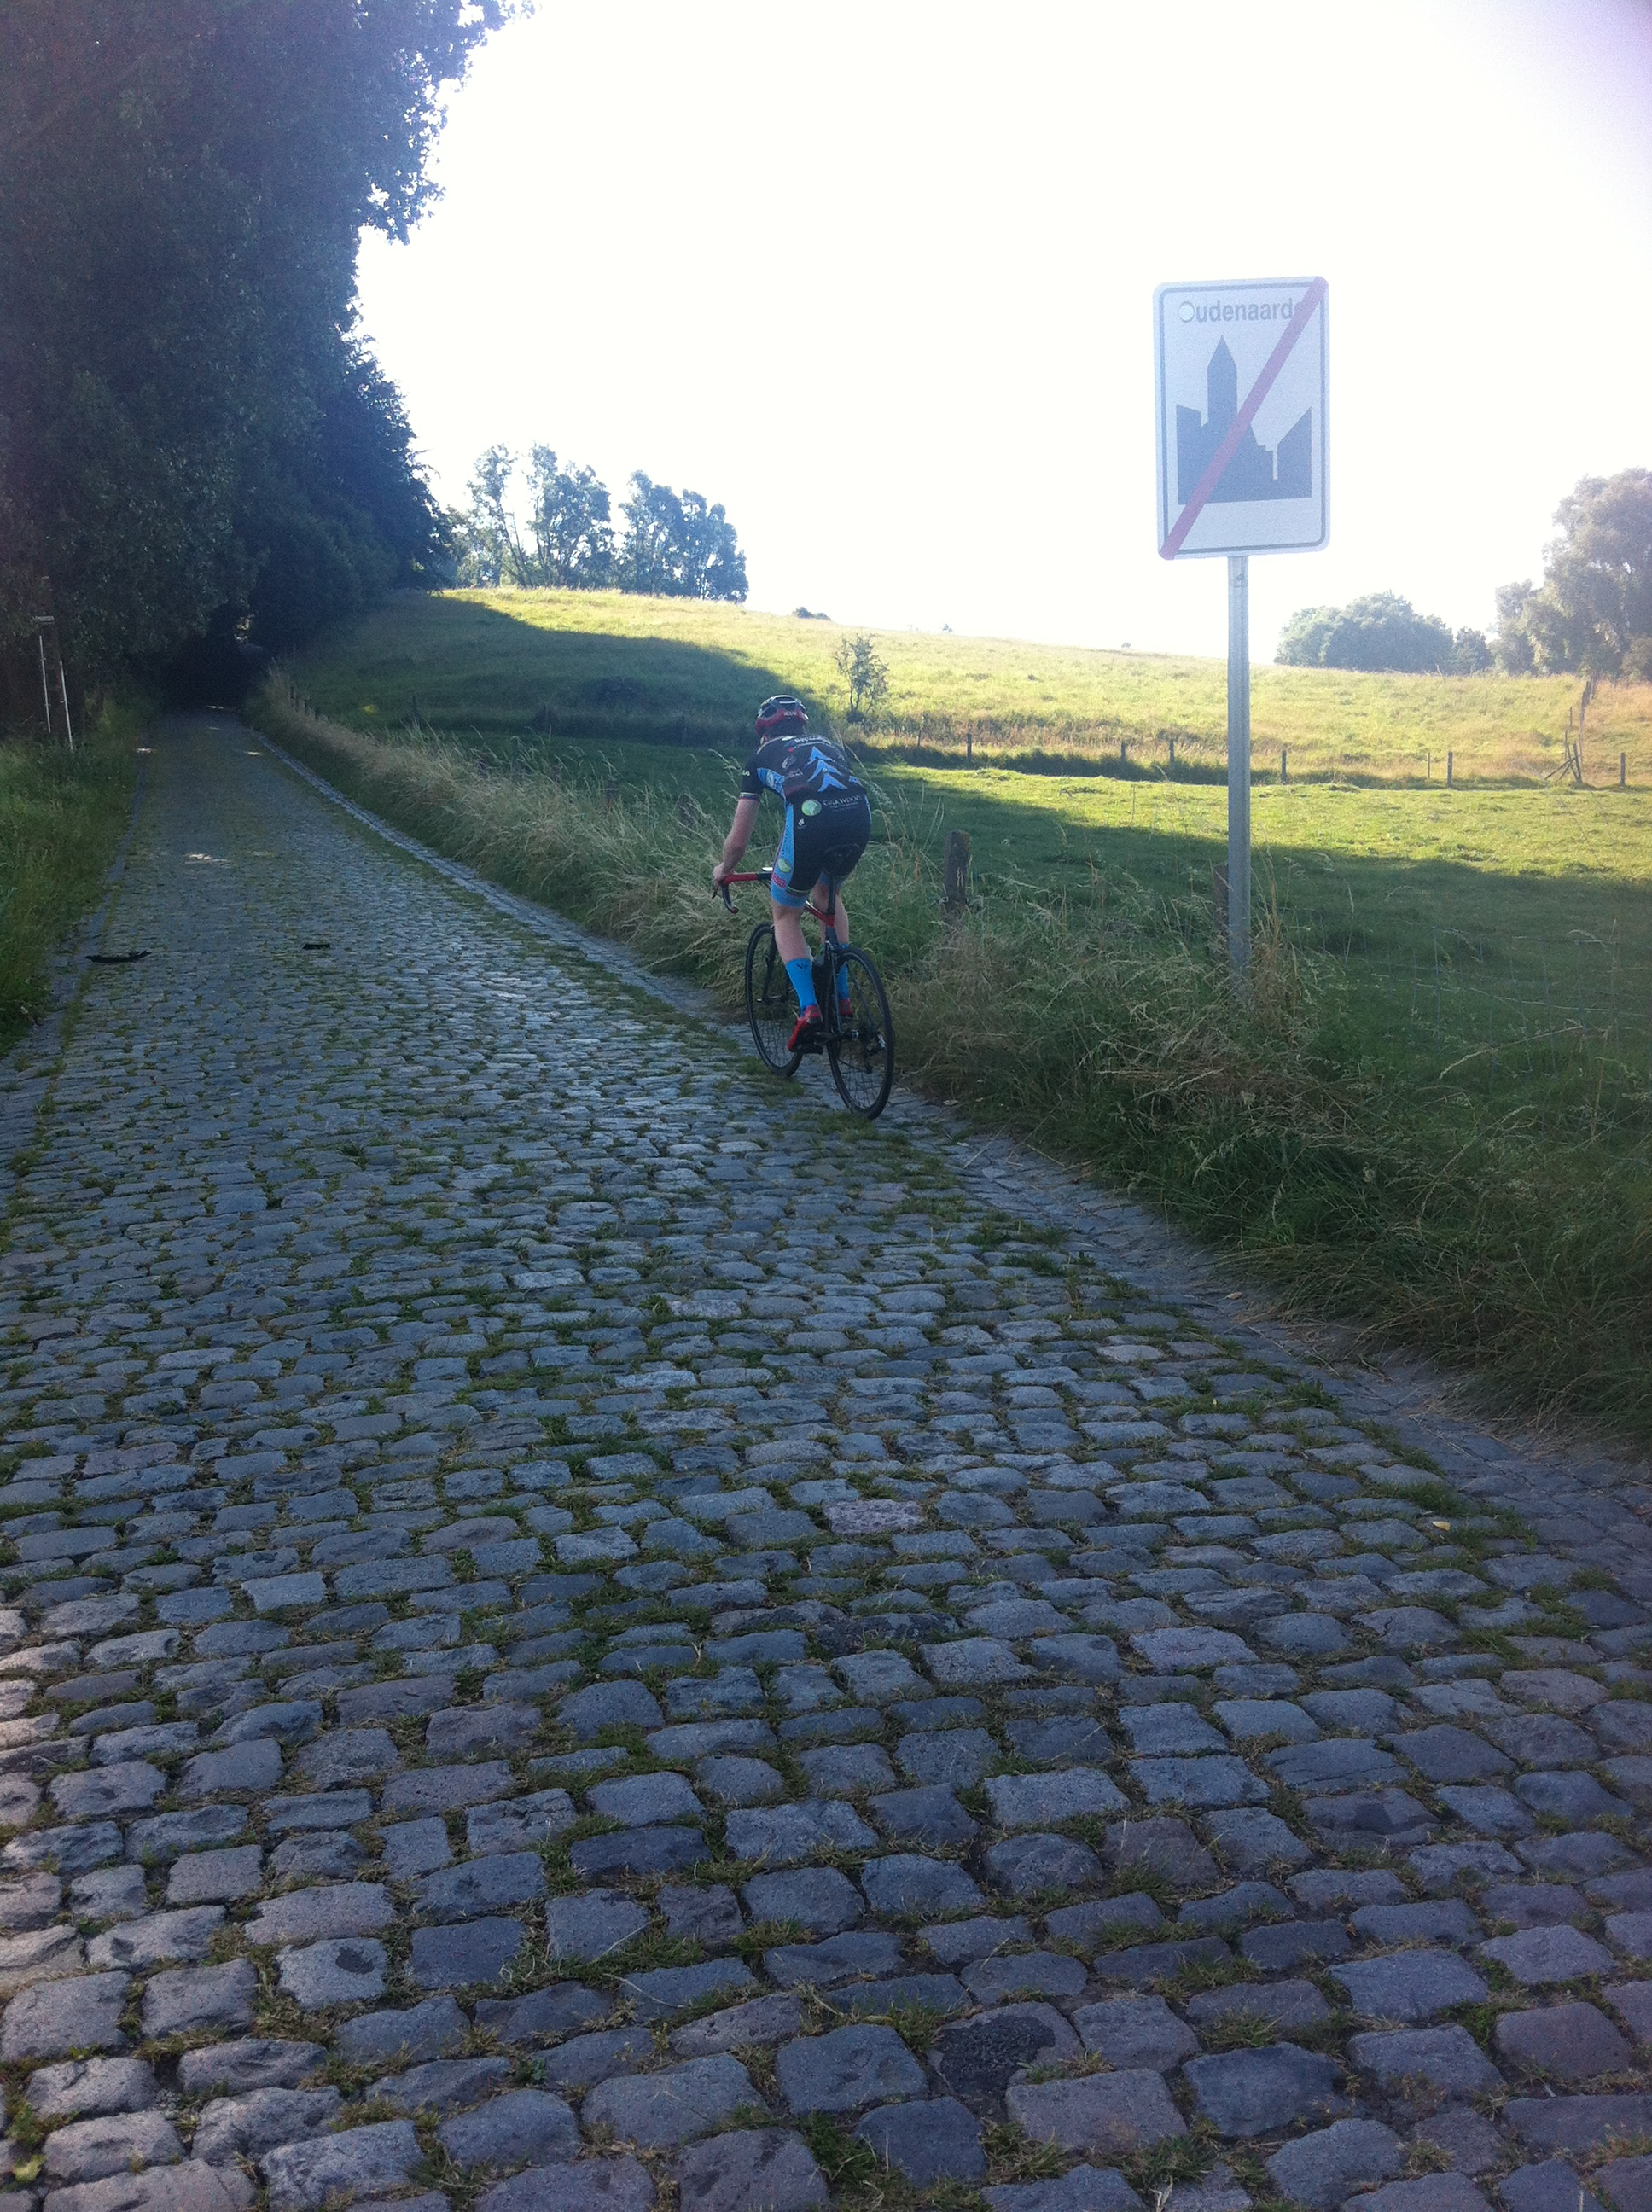 Approaching the Koppenberg ... under the trees the gradient is 22% and Conor used 38 x 28.